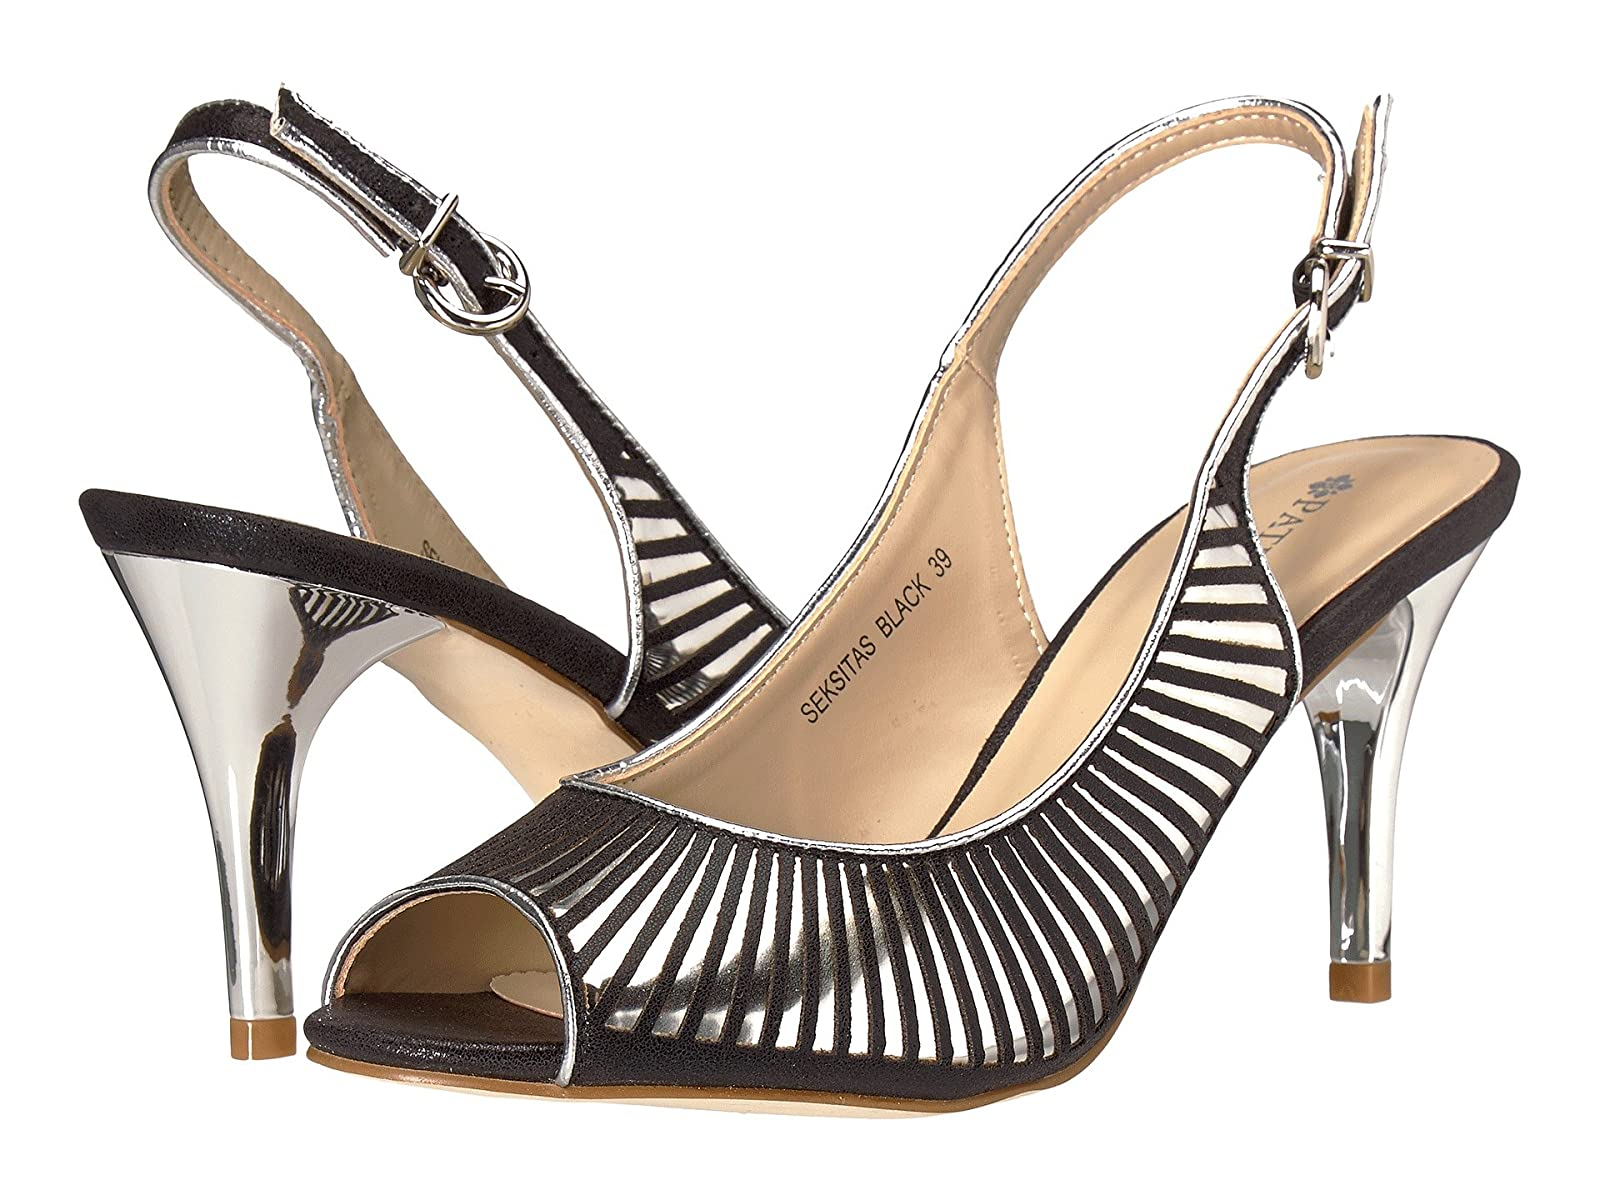 PATRIZIA SeksitasCheap and distinctive eye-catching shoes